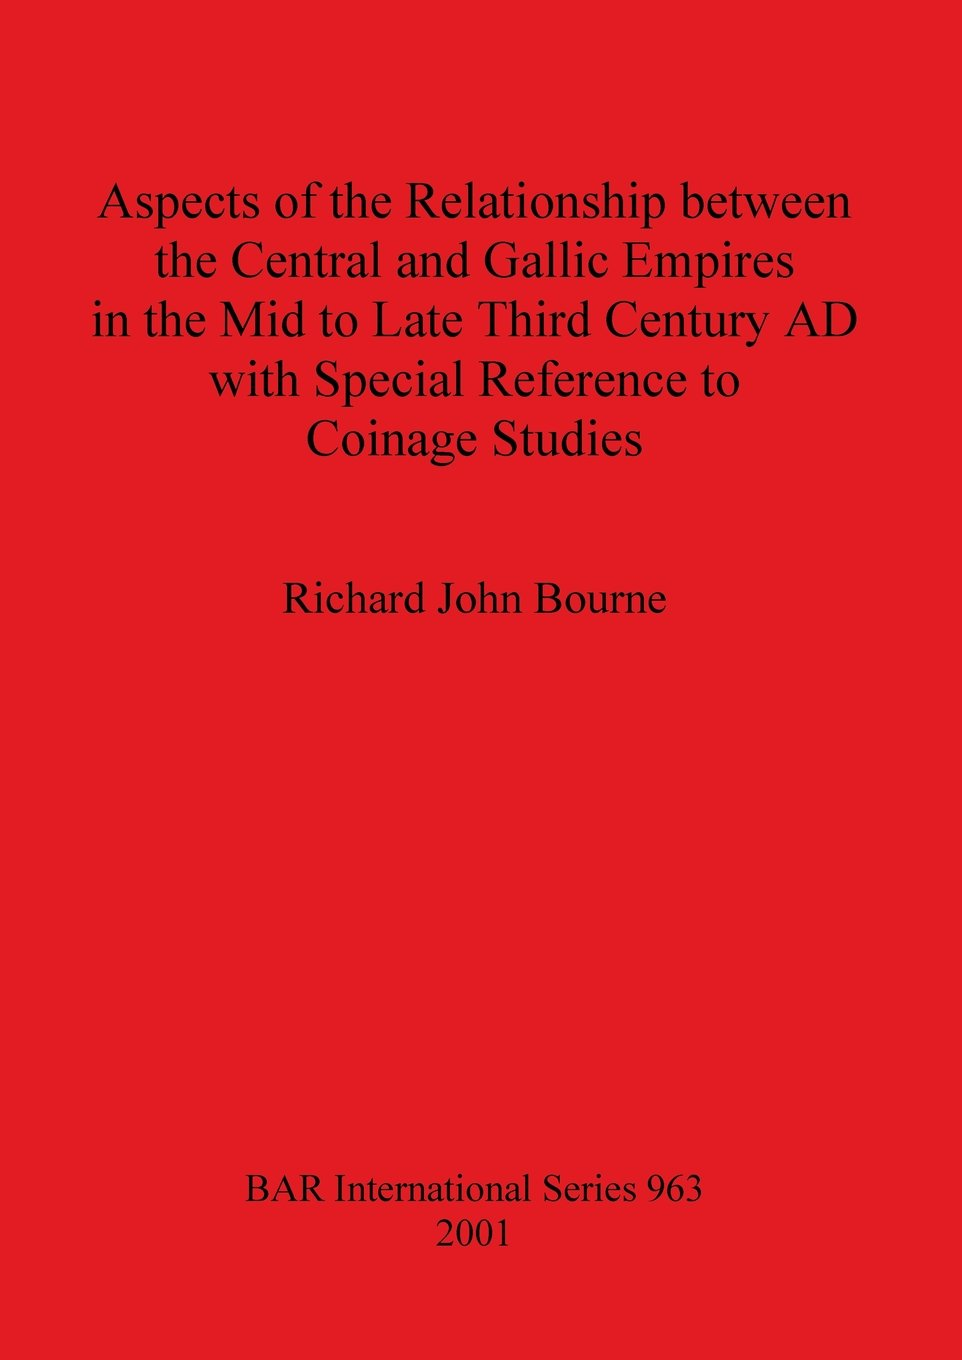 Aspects of the Relationship between the Central and Gallic Empires in the Mid to Late Third Century AD with Special  Reference to Coinage Studies (BAR International) ebook